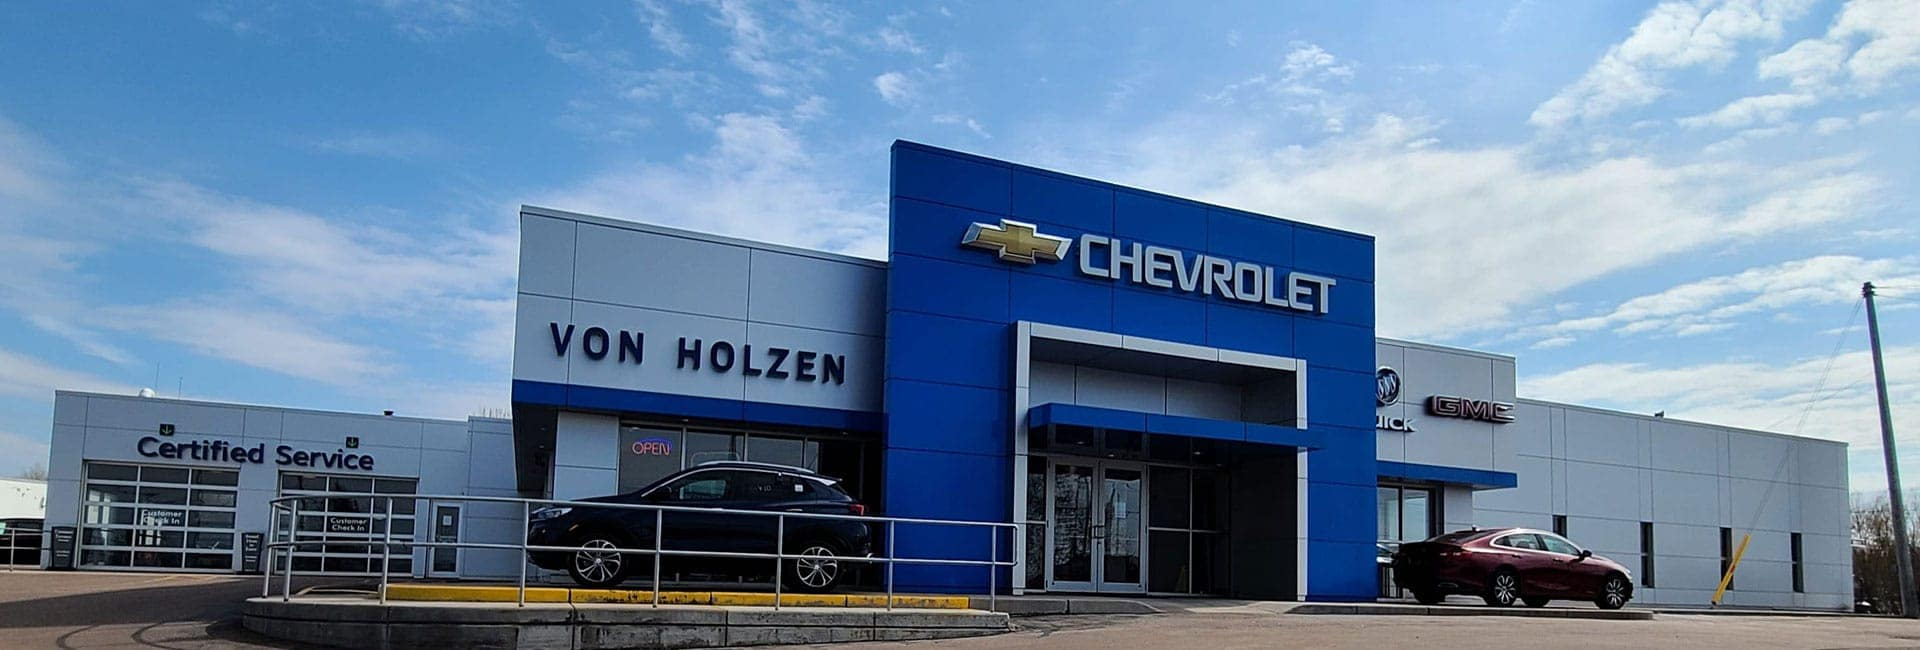 An exterior shot of the Von Holzen dealership